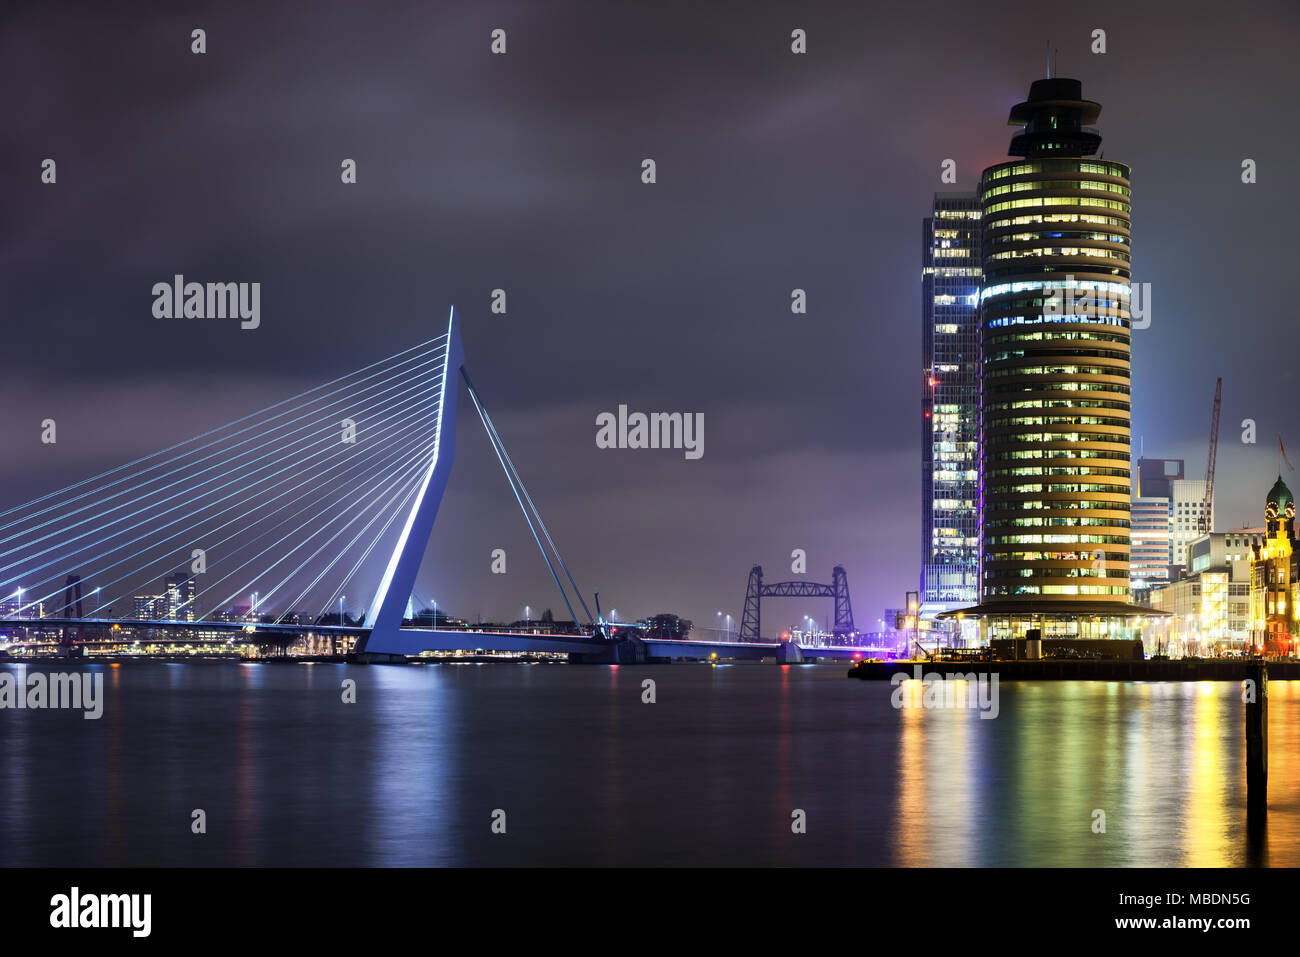 Amazing night view at Erasmus bridge in Rotterdam, Holland. Fascinating modern architecture. - Stock Image